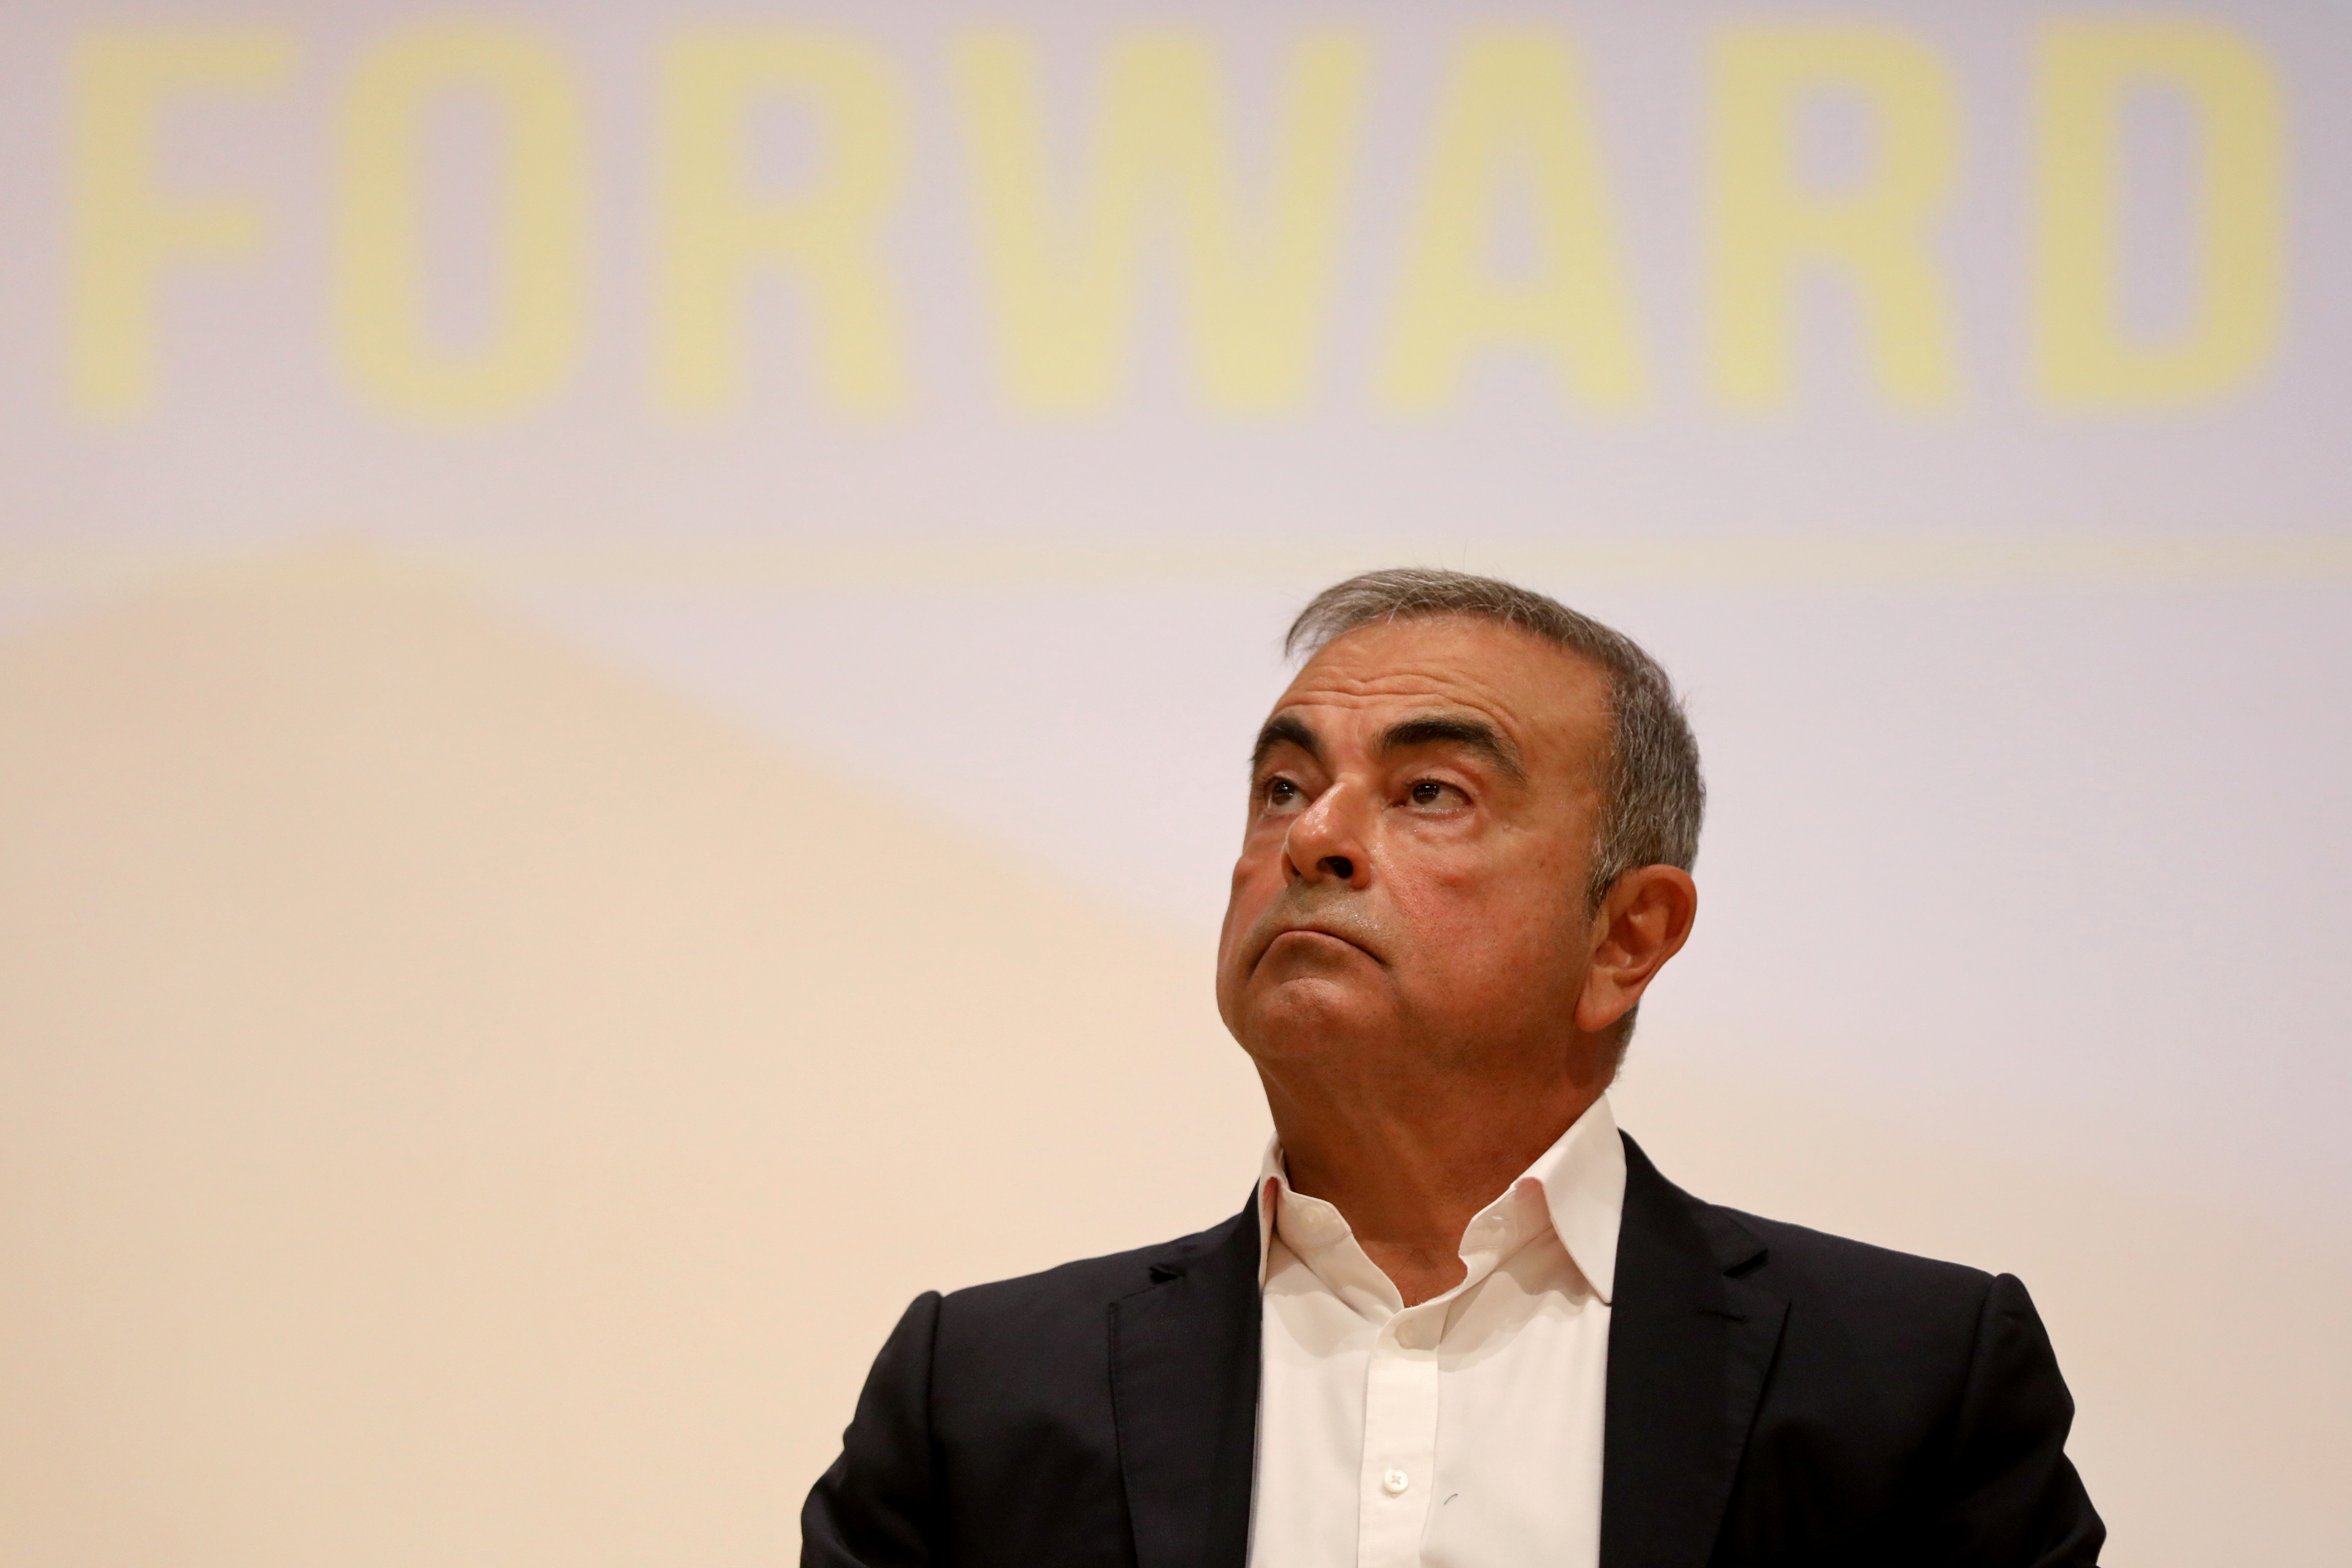 Carlos Ghosn, the former Nissan and Renault chief executive, looks on during a news conference at the Holy Spirit University of Kaslik, in Jounieh, Lebanon September 29, 2020. REUTERS/Mohamed Azakir